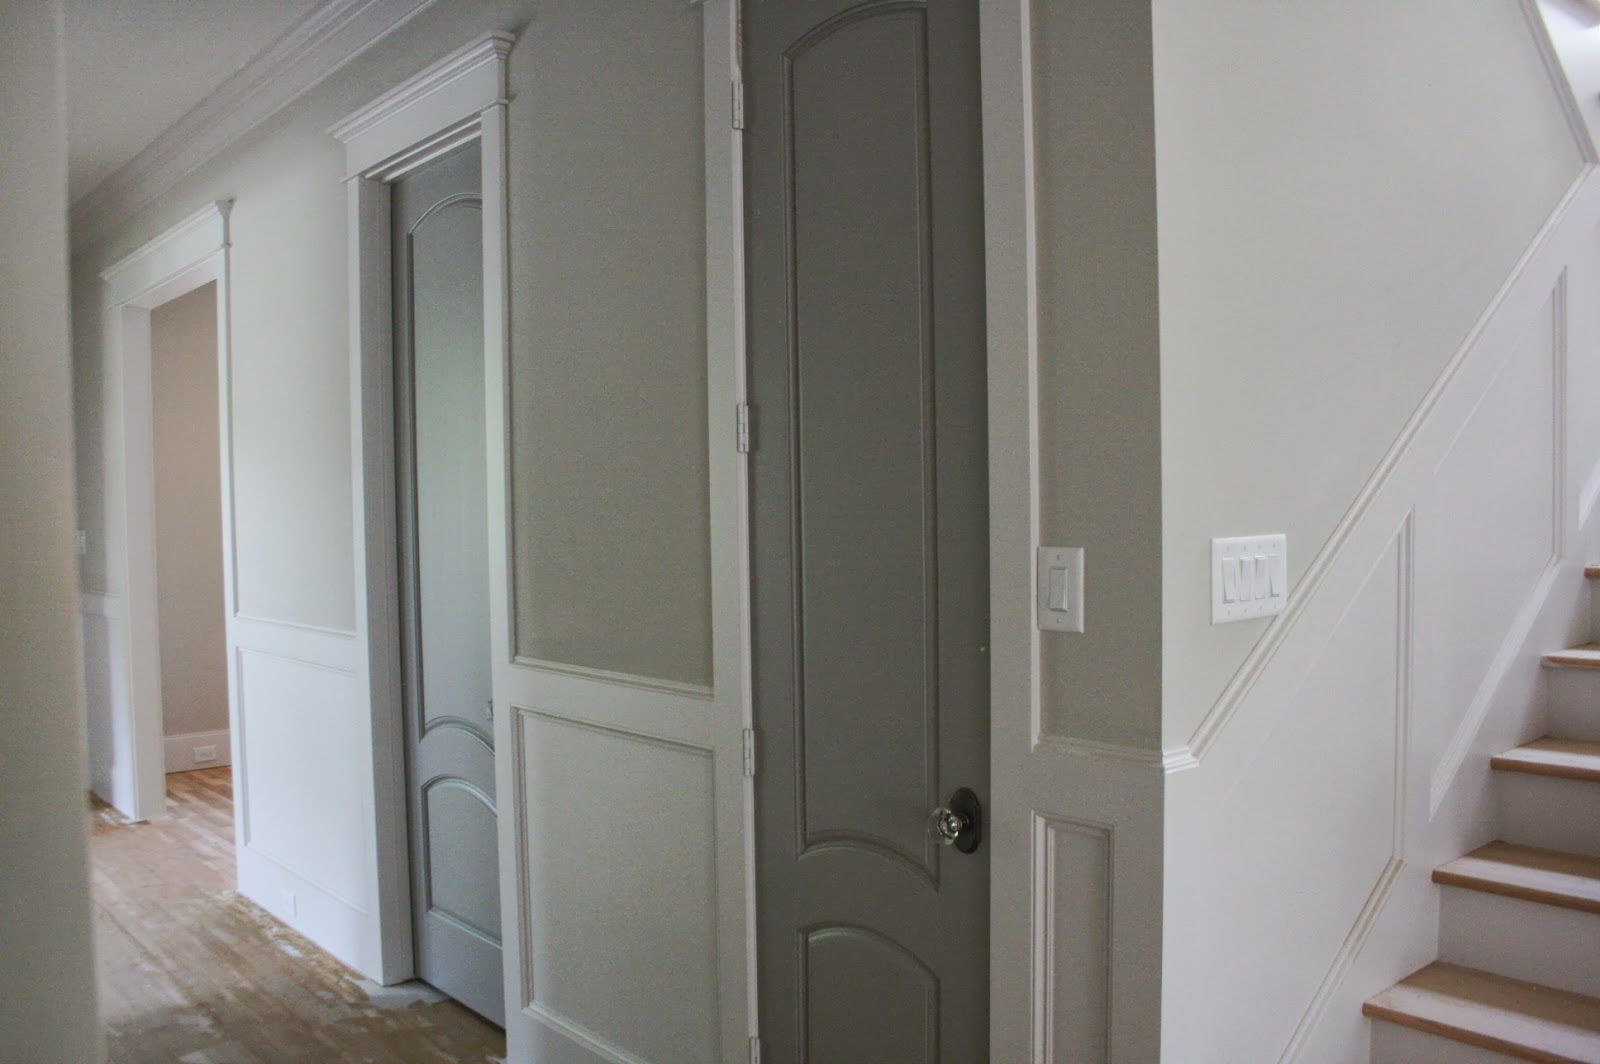 Walls Sw Agreeable Gray The Cabinets Trim And Wainscoting Is Sw